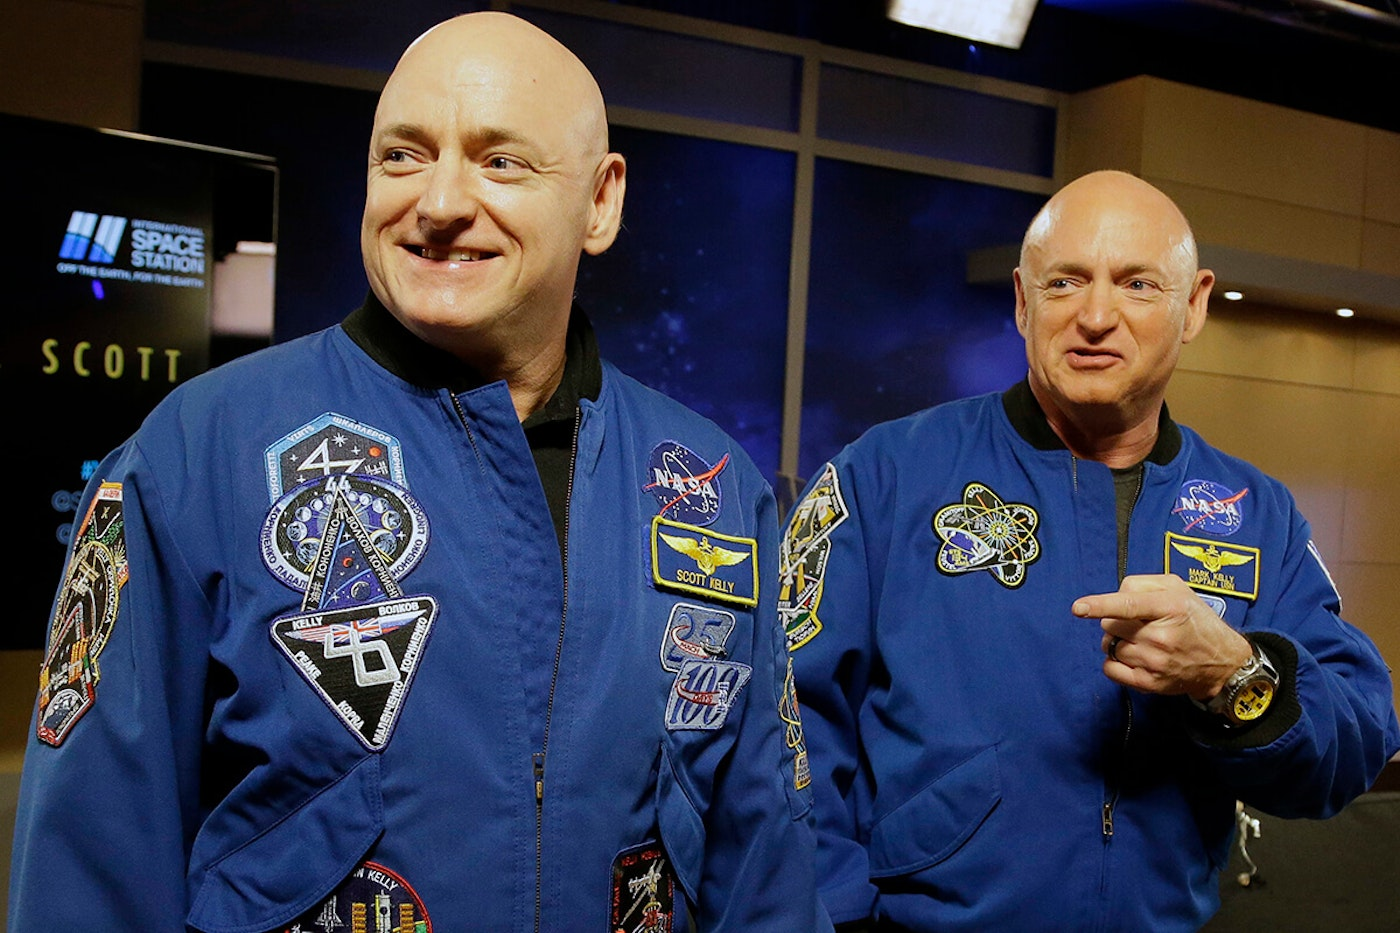 Scott and Mark Kelly standing next to each other wearing spacesuits